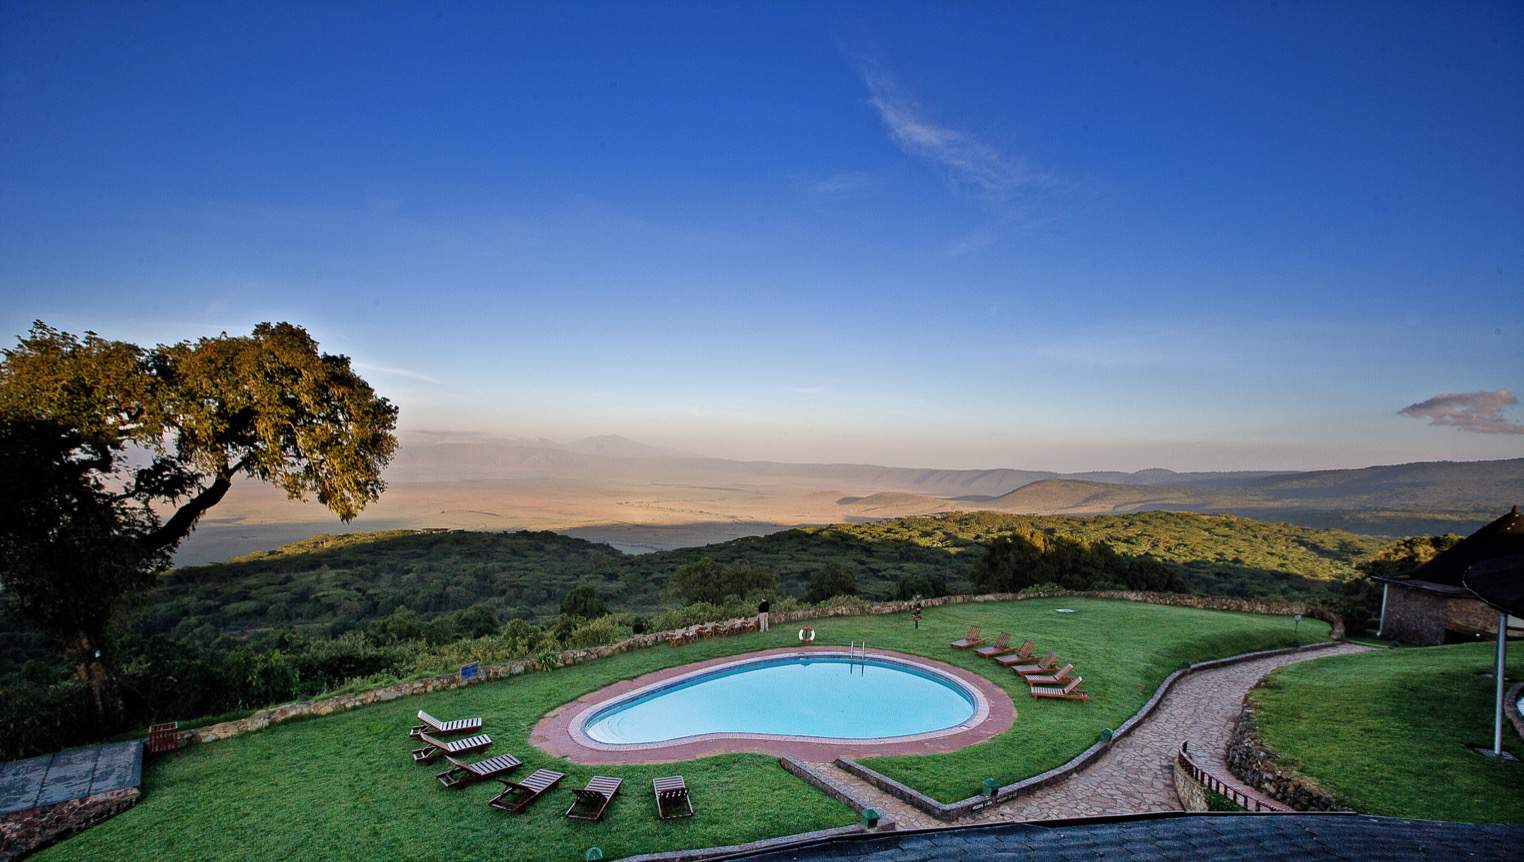 view over the Ngorongoro crater from the lodge